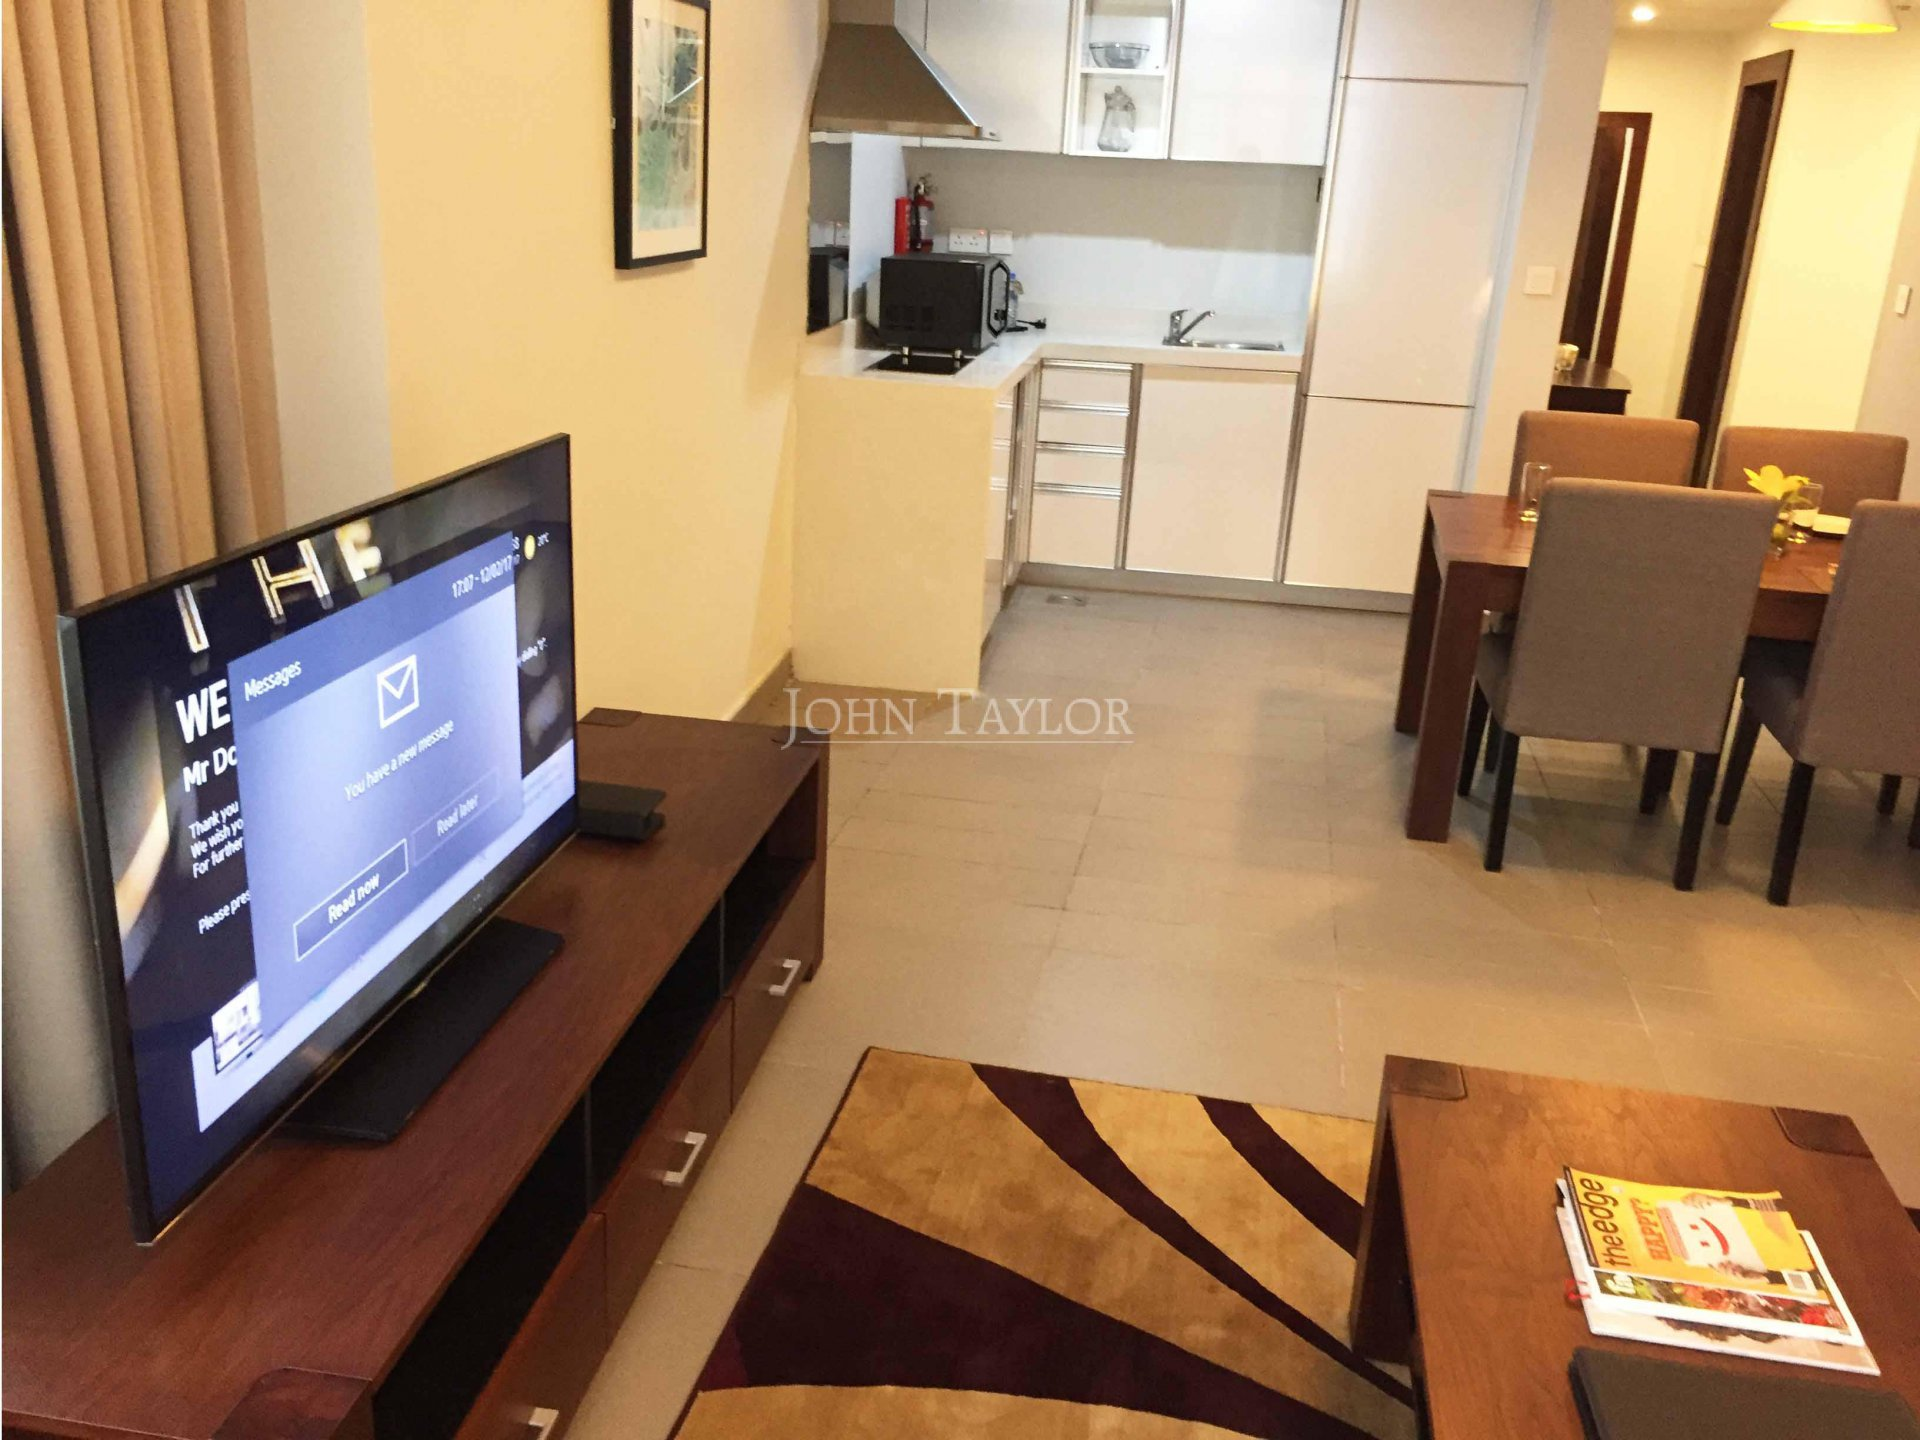 1 Bedroom Flat For Rent In Doha 28 Images Semi Furnished 1 Bedroom Apartment For Rent In The